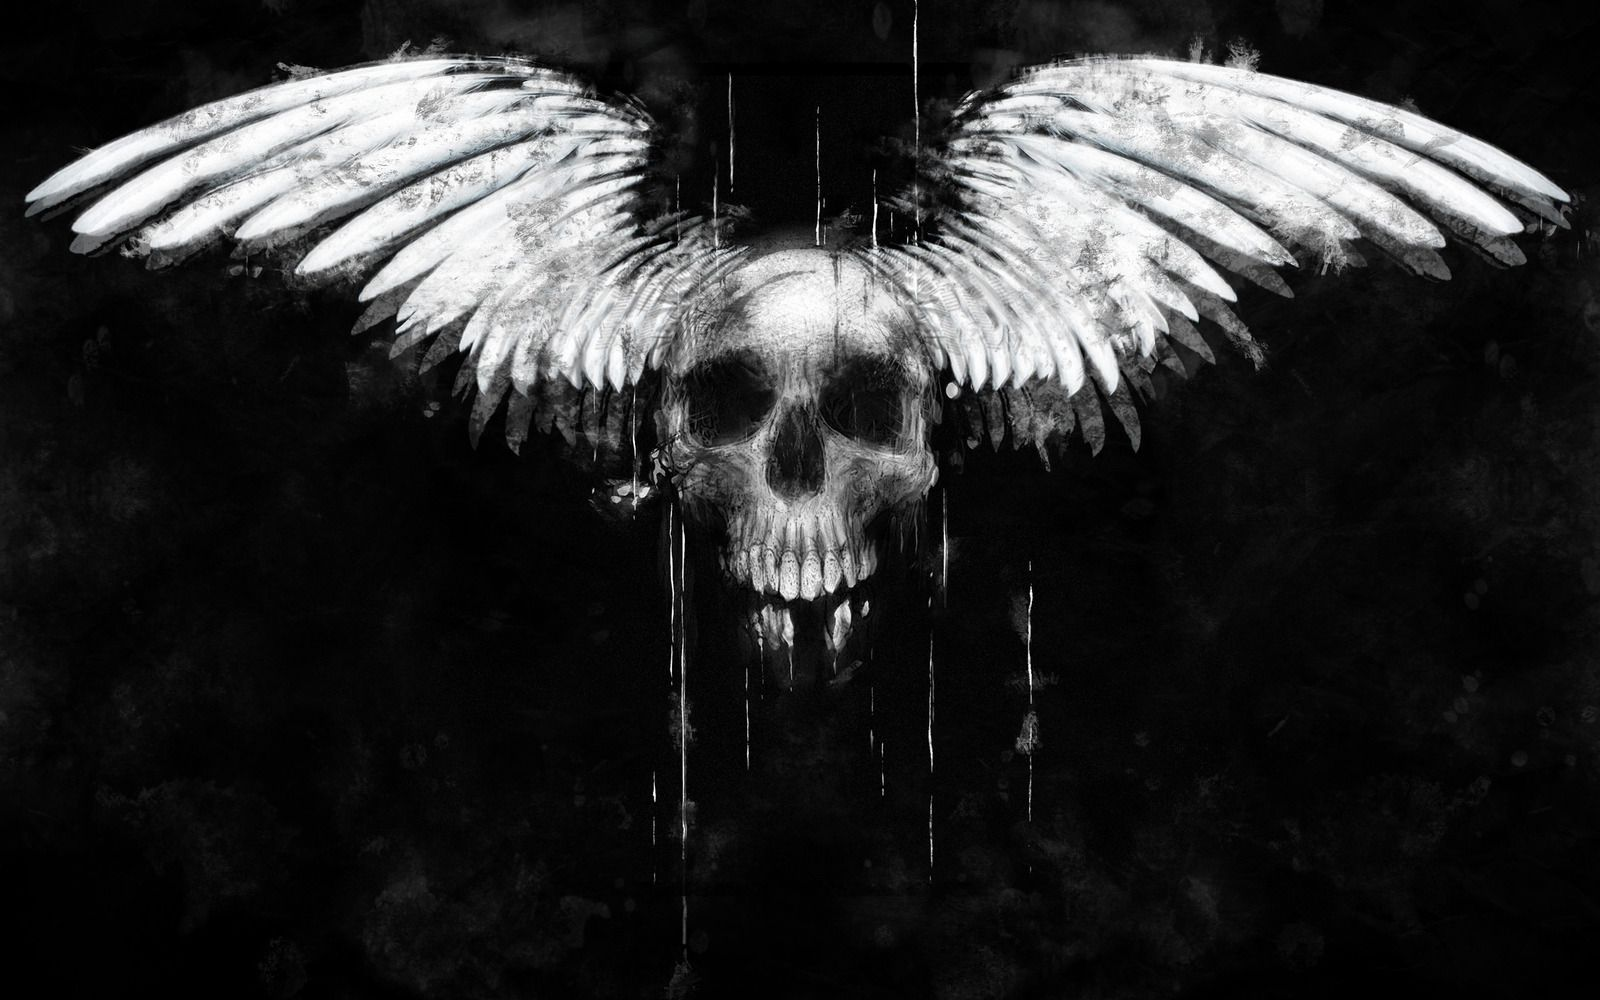 Evil Skull Hd Wallpapers Desktop Background with High Resolution 1600x1000